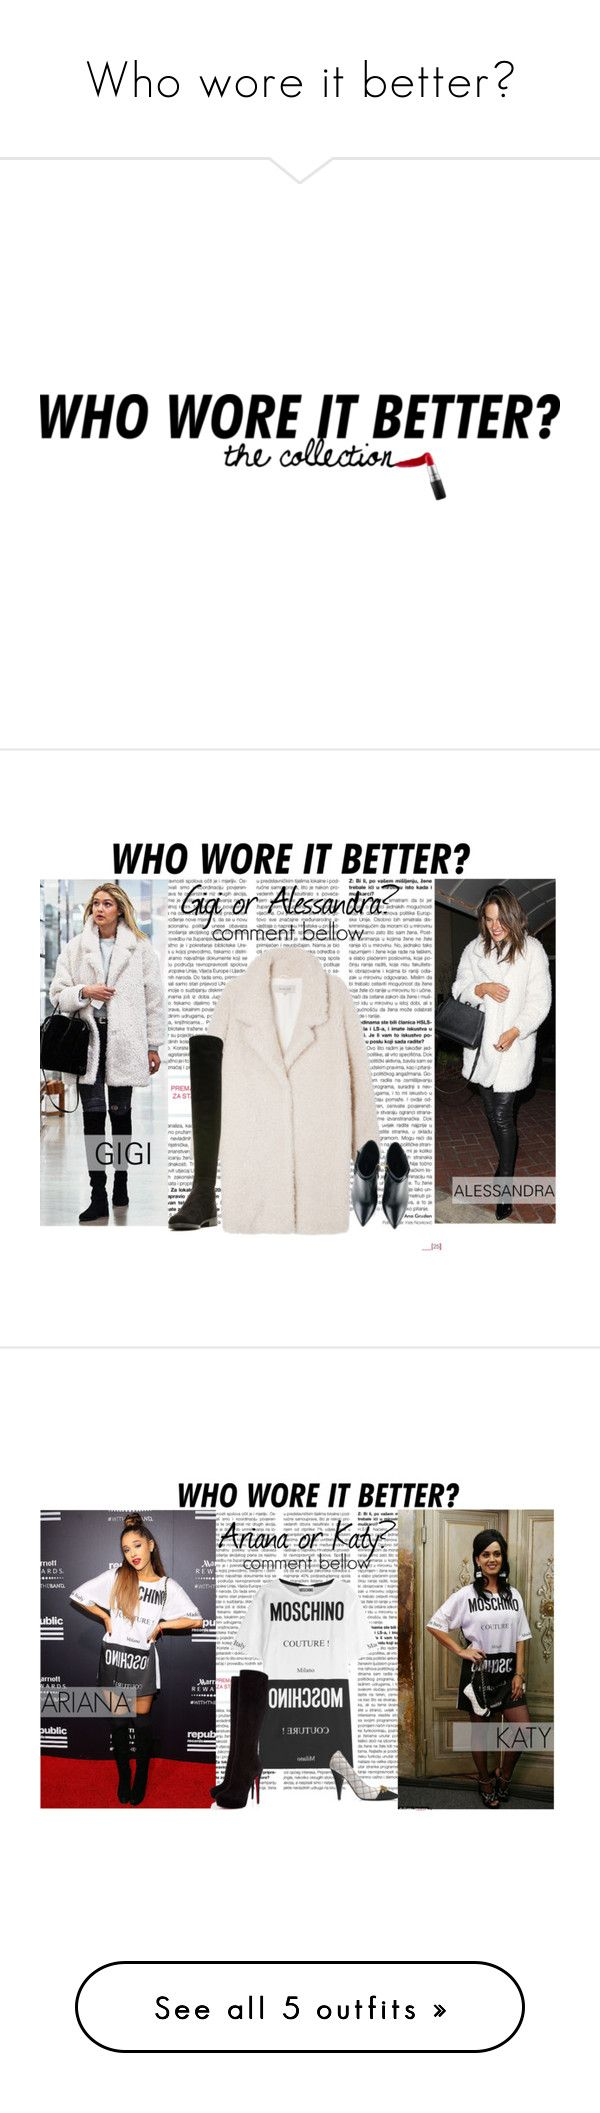 """Who wore it better?"" by lidage on Polyvore featuring TheBalm, MAC Cosmetics, Cristabelle, Kim Kwang, Stuart Weitzman, WhoWoreItBetter, Moschino, Christian Louboutin, Charlotte Russe and Michael Kors"